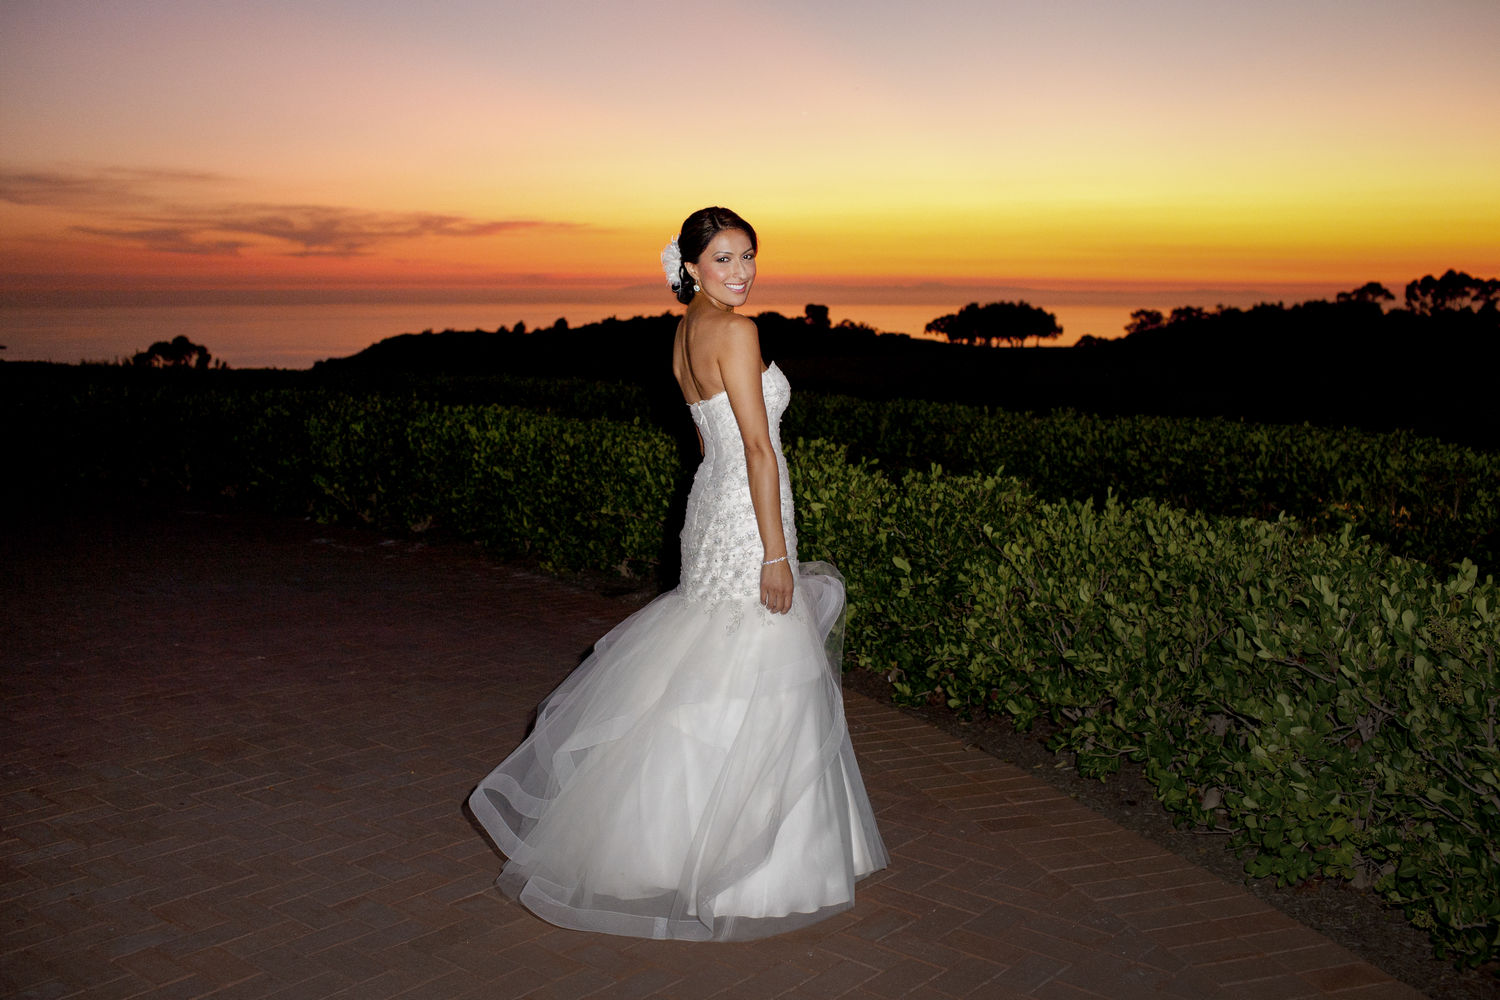 wedding-pelican-hill-resort-jindy-tilmann-170.jpg